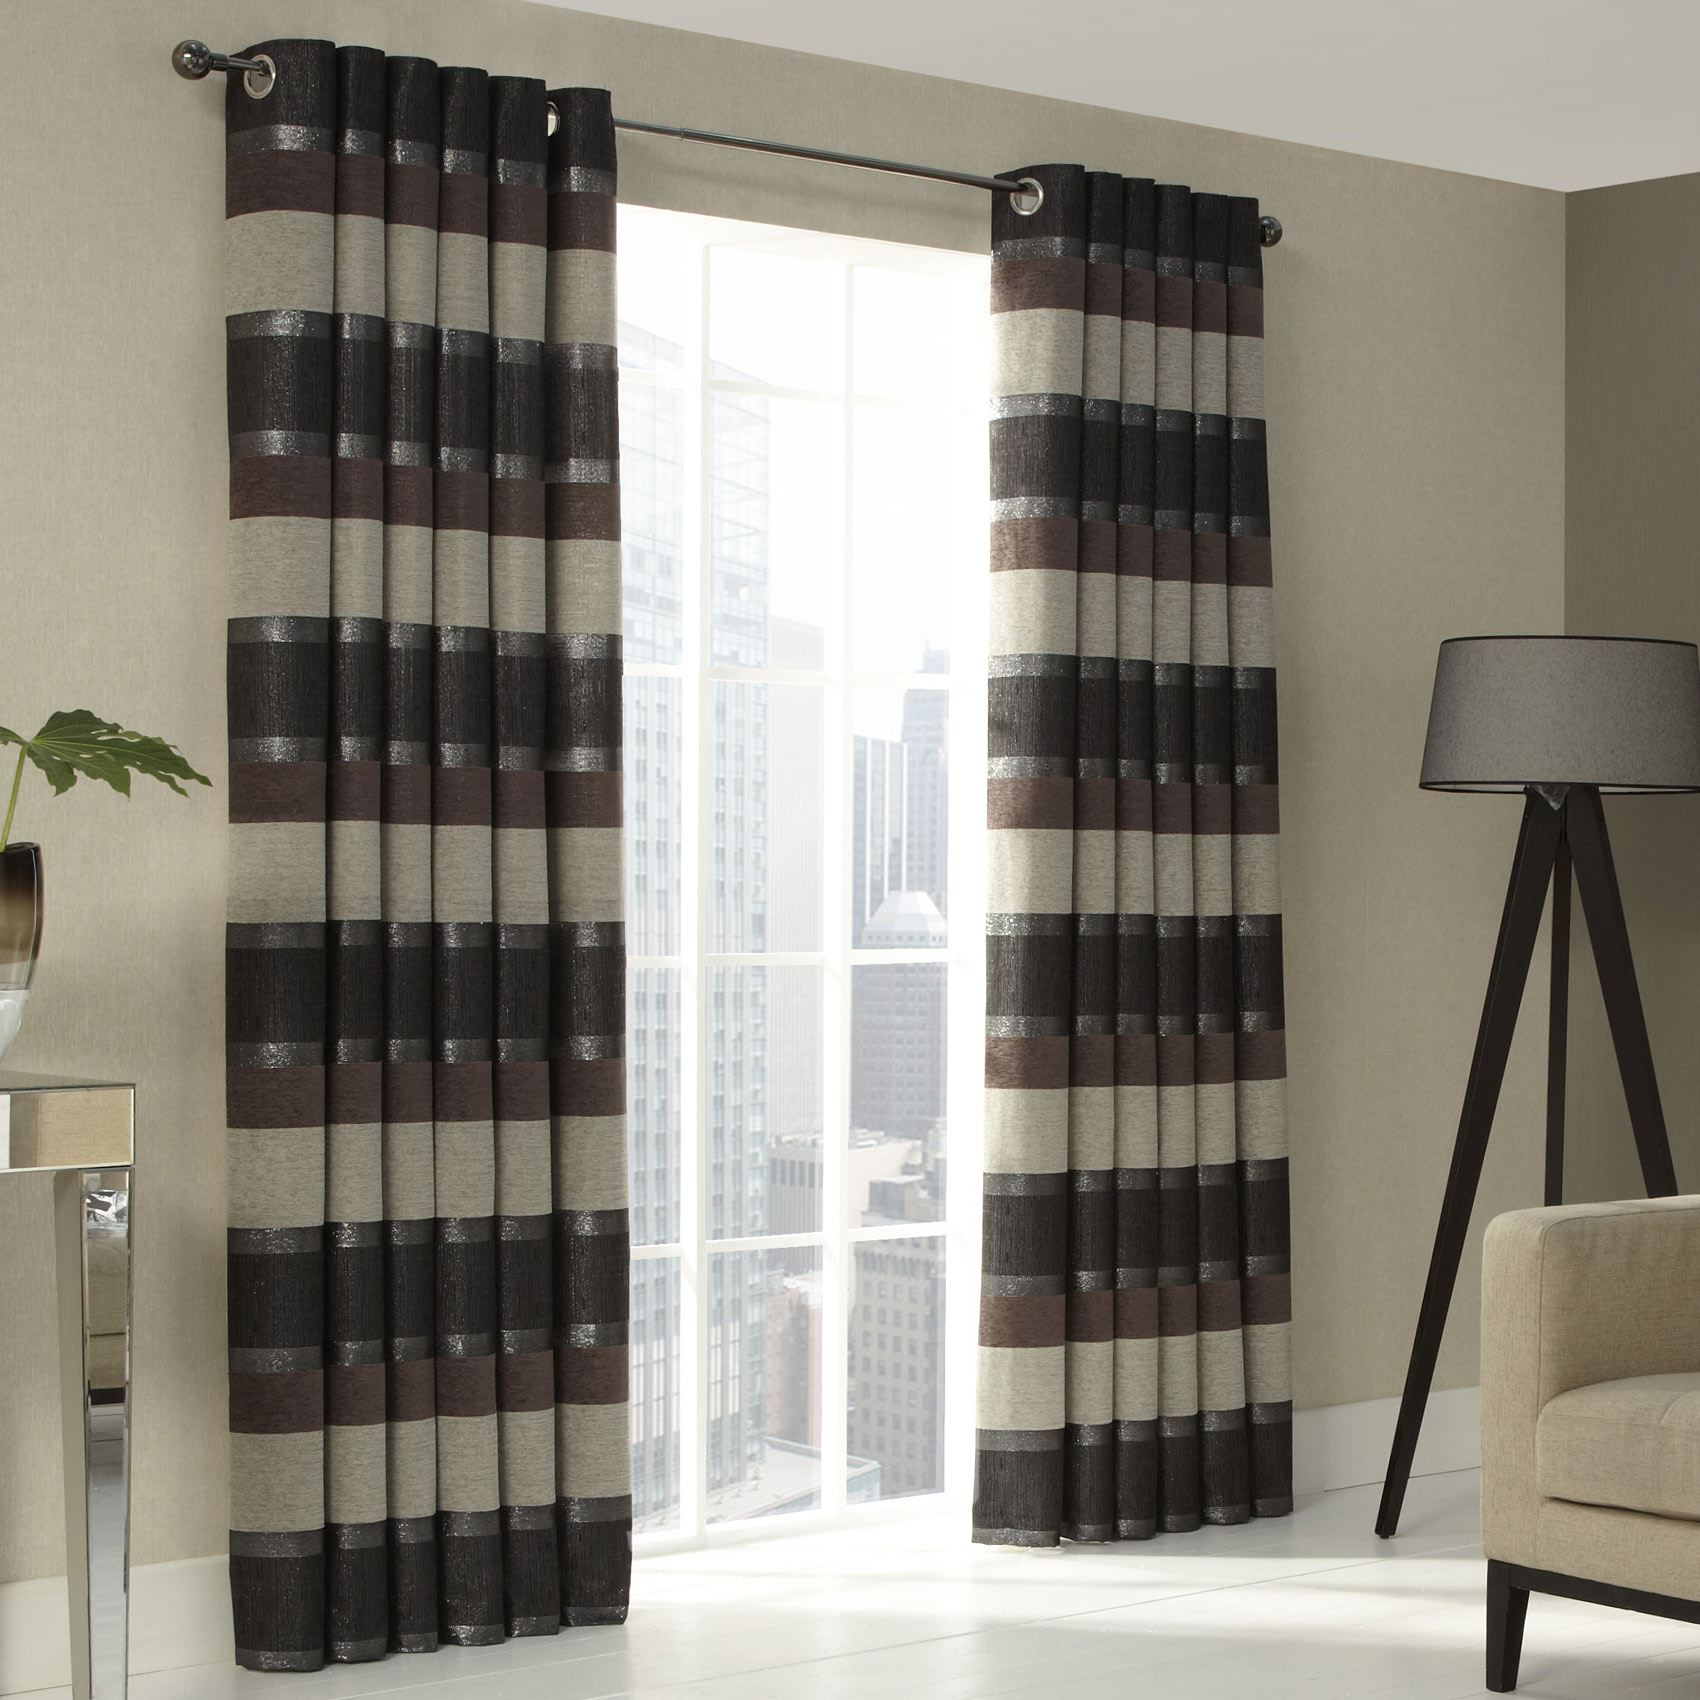 chenille rayures marron gris doubl bague haut oeillet rideaux 9 tailles ebay. Black Bedroom Furniture Sets. Home Design Ideas